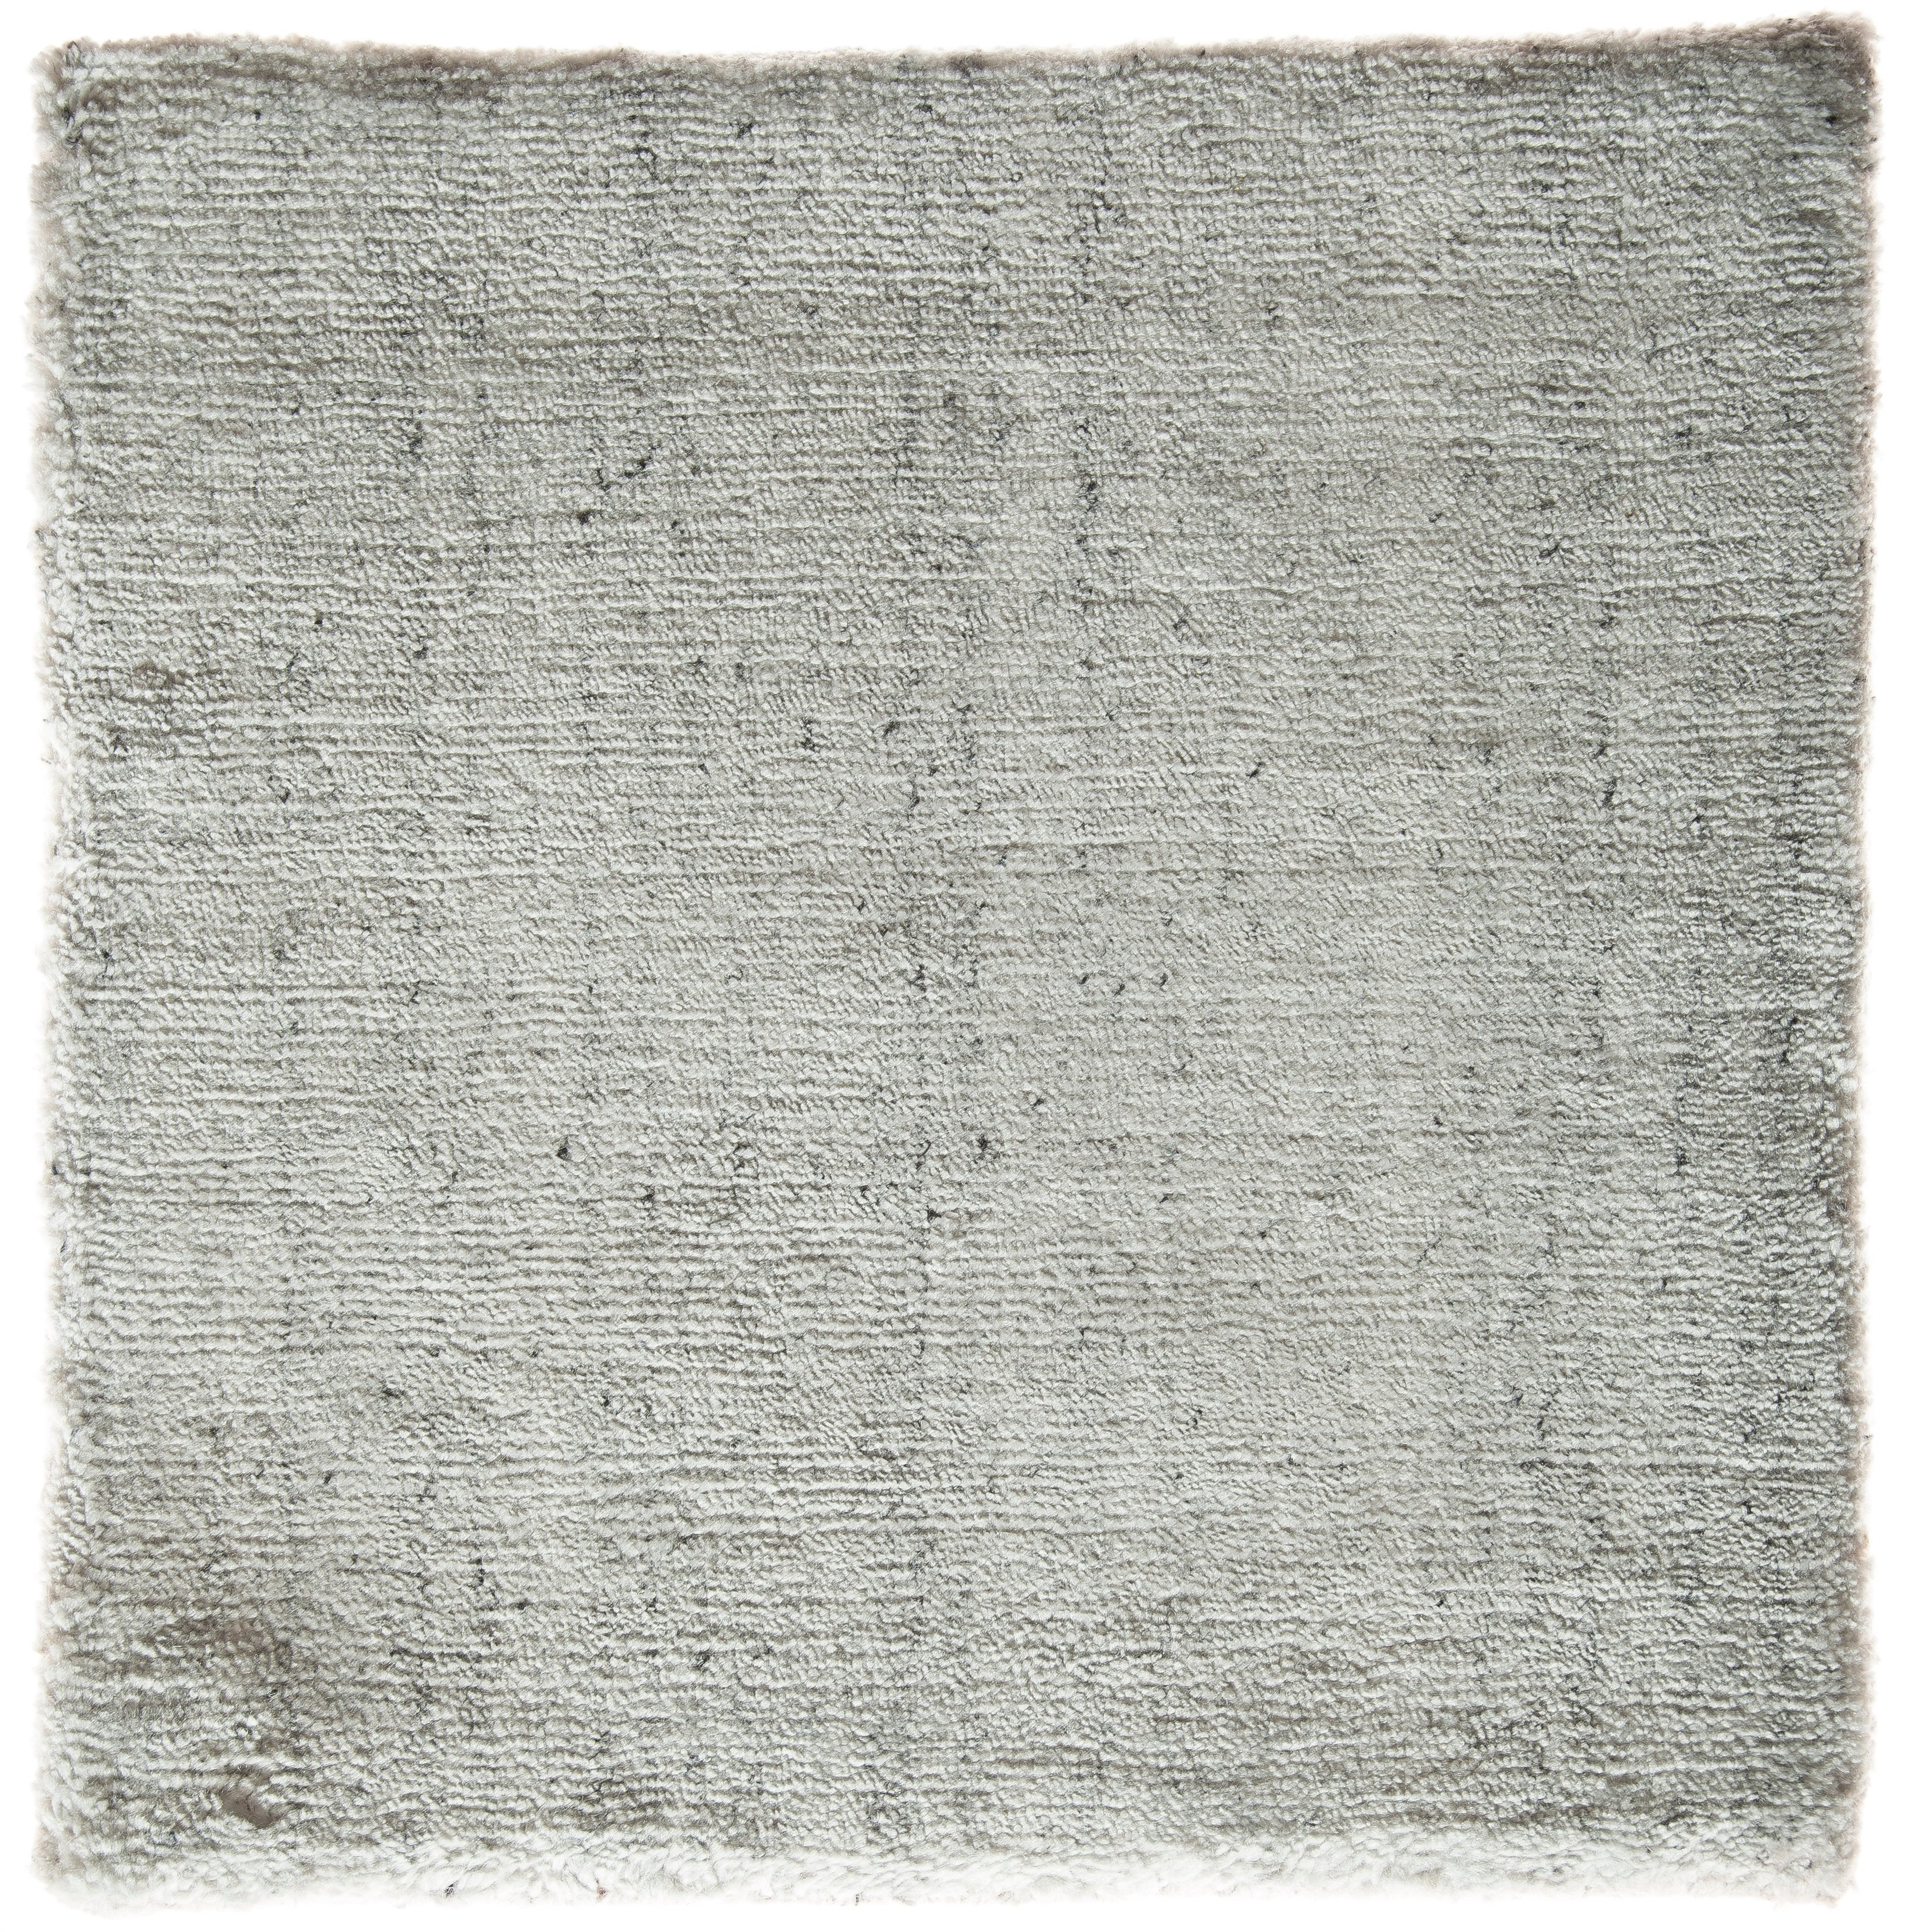 Solid White Rug with Slate Specks Made by Hand-Loom with Bamboo Silk